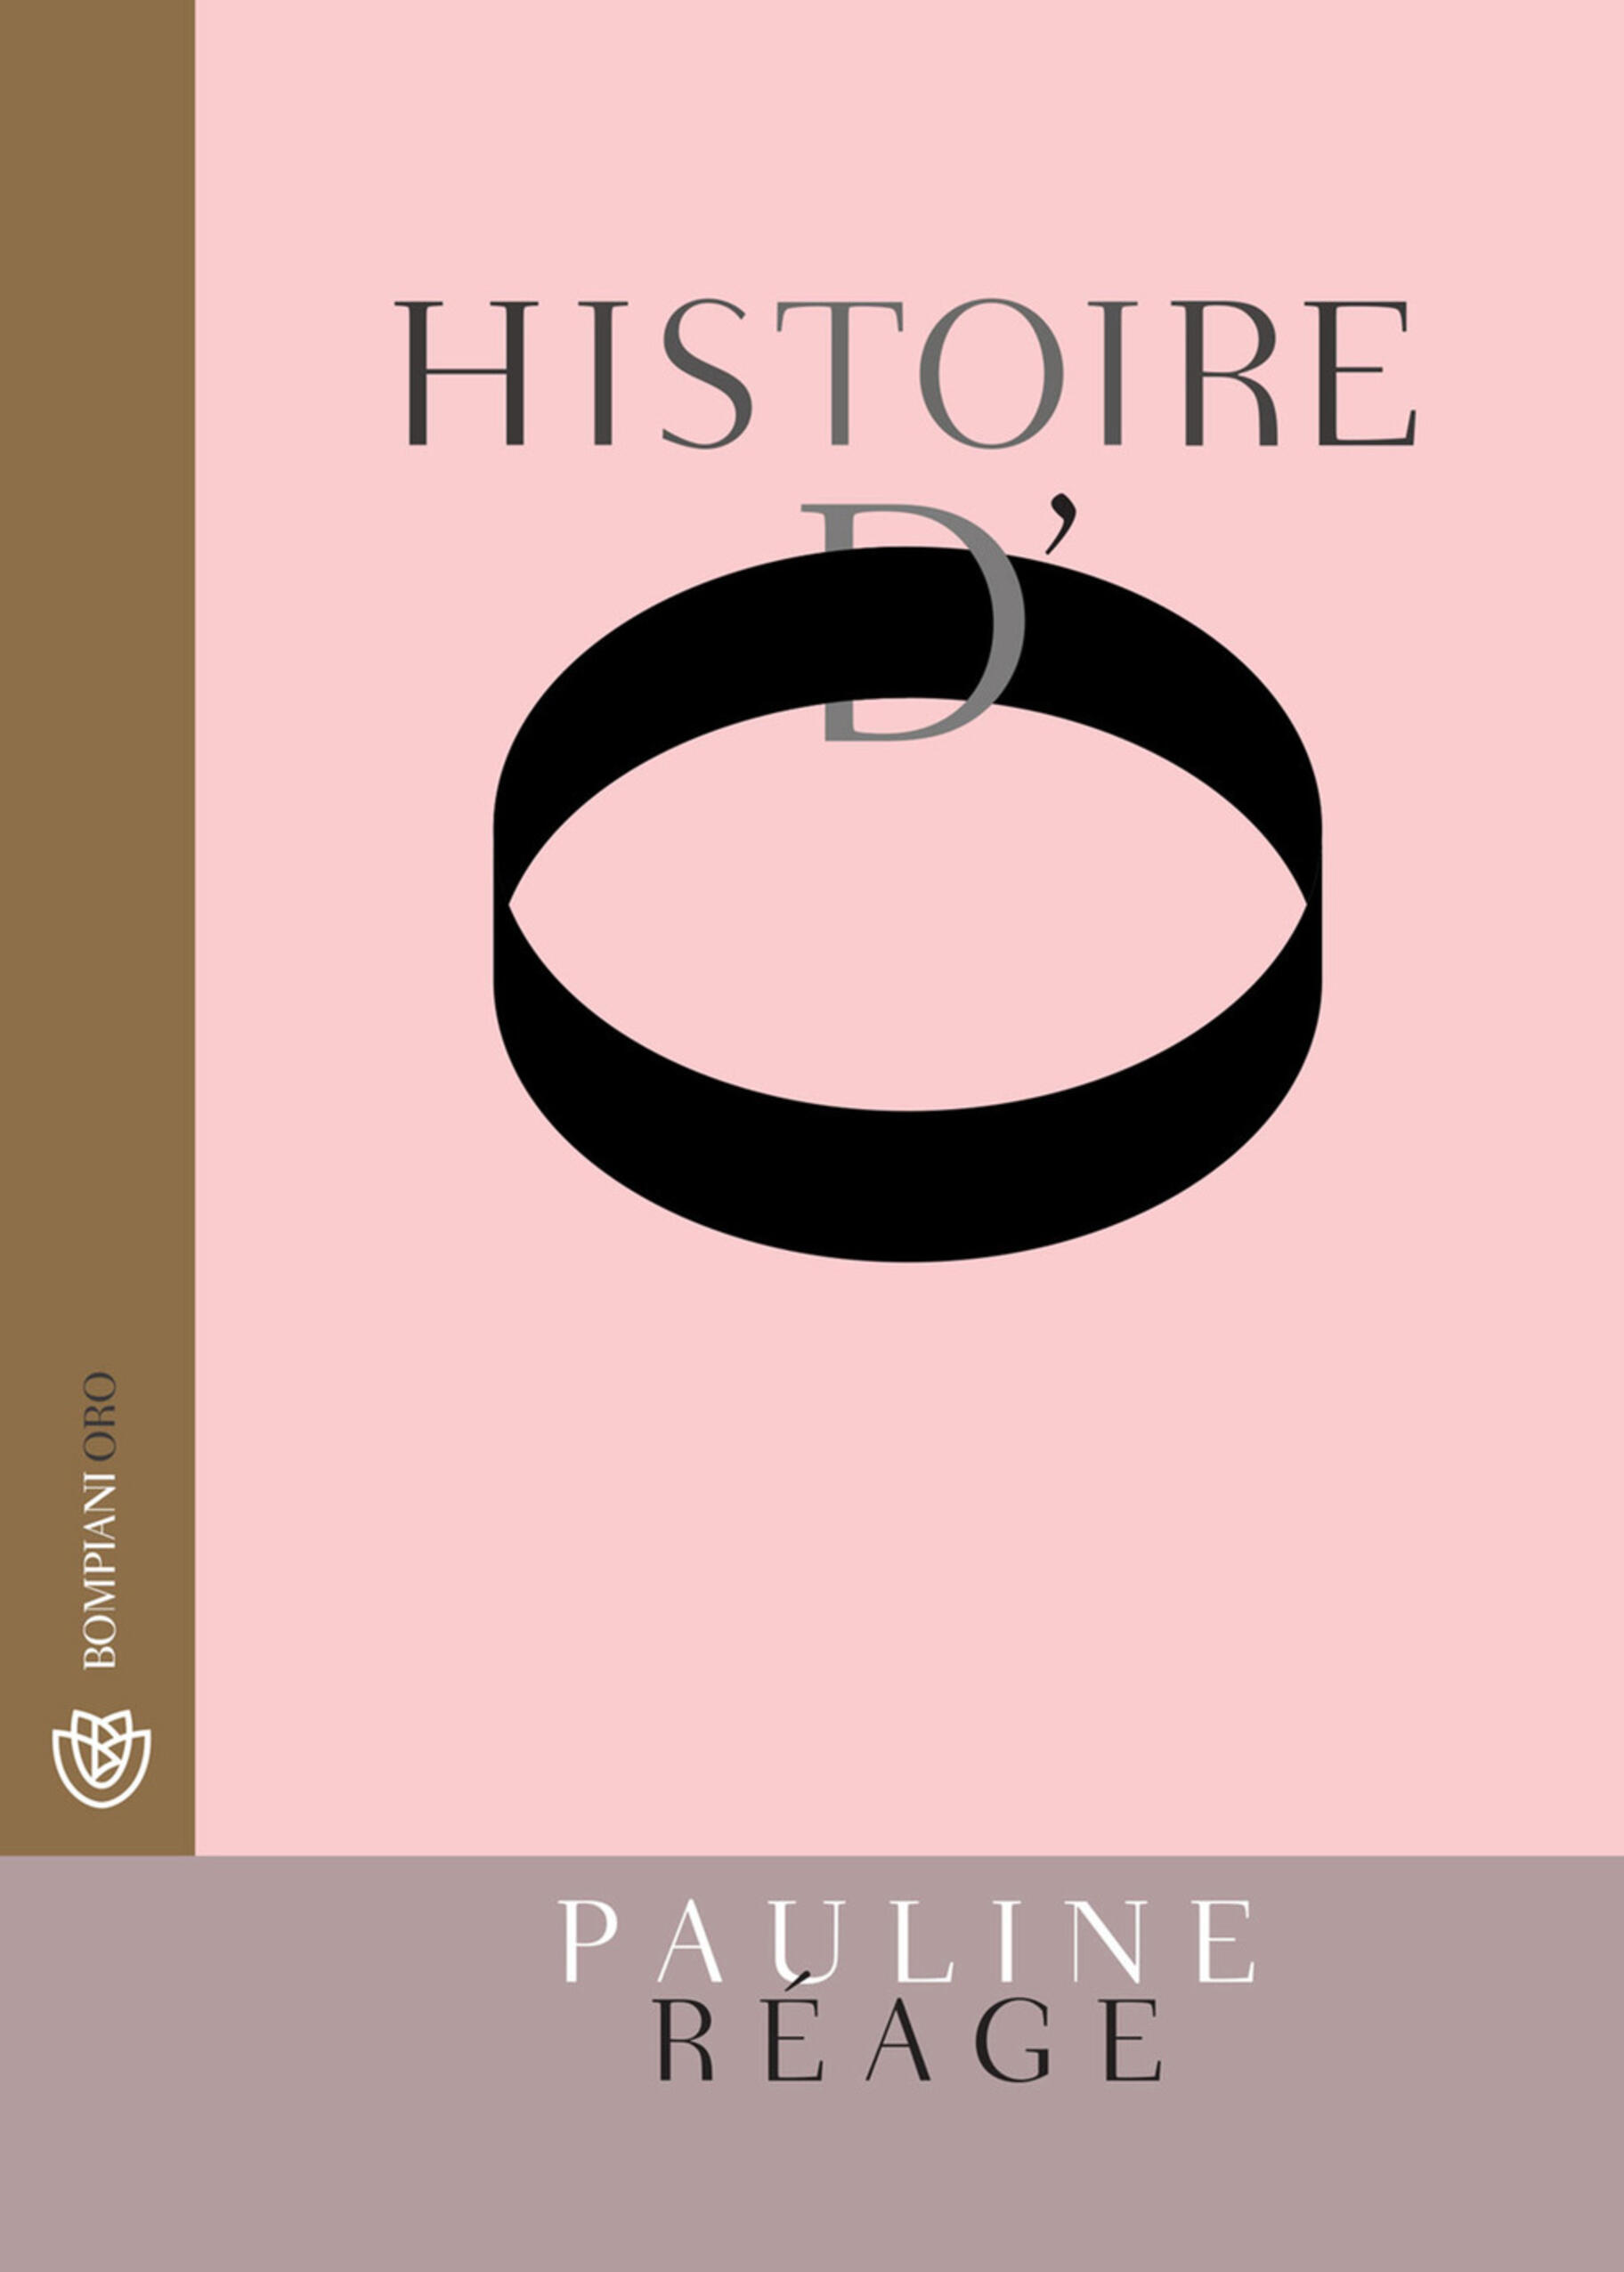 the story of o pauline reage pdf